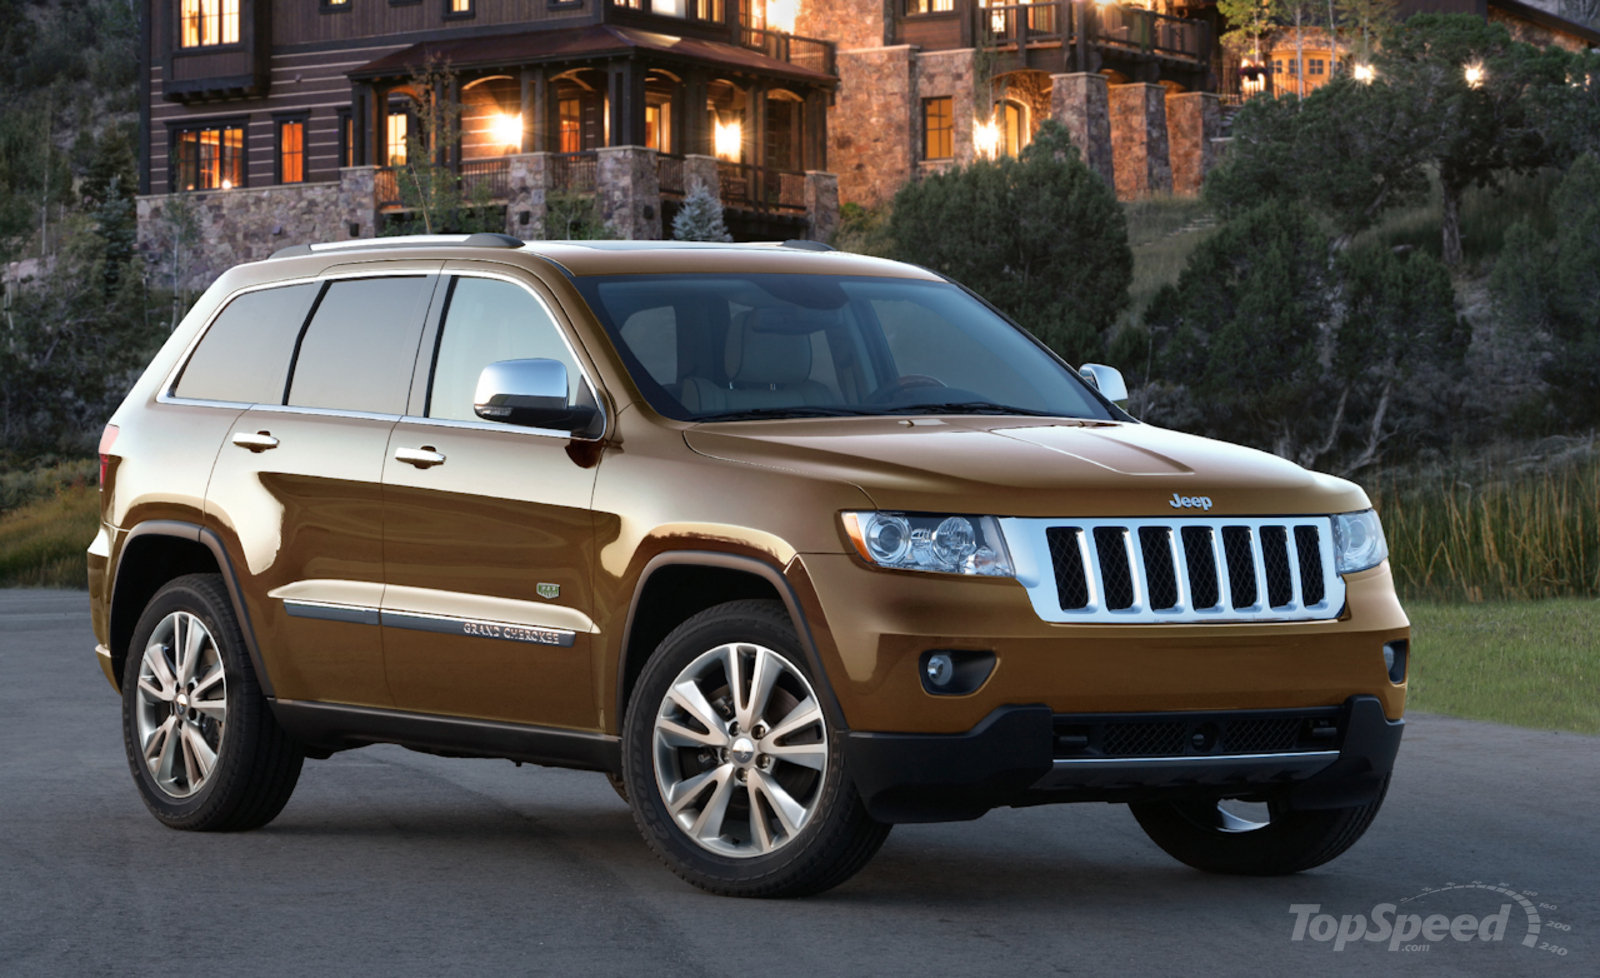 2011 jeep grand cherokee 70th anniversary edition review top speed. Black Bedroom Furniture Sets. Home Design Ideas